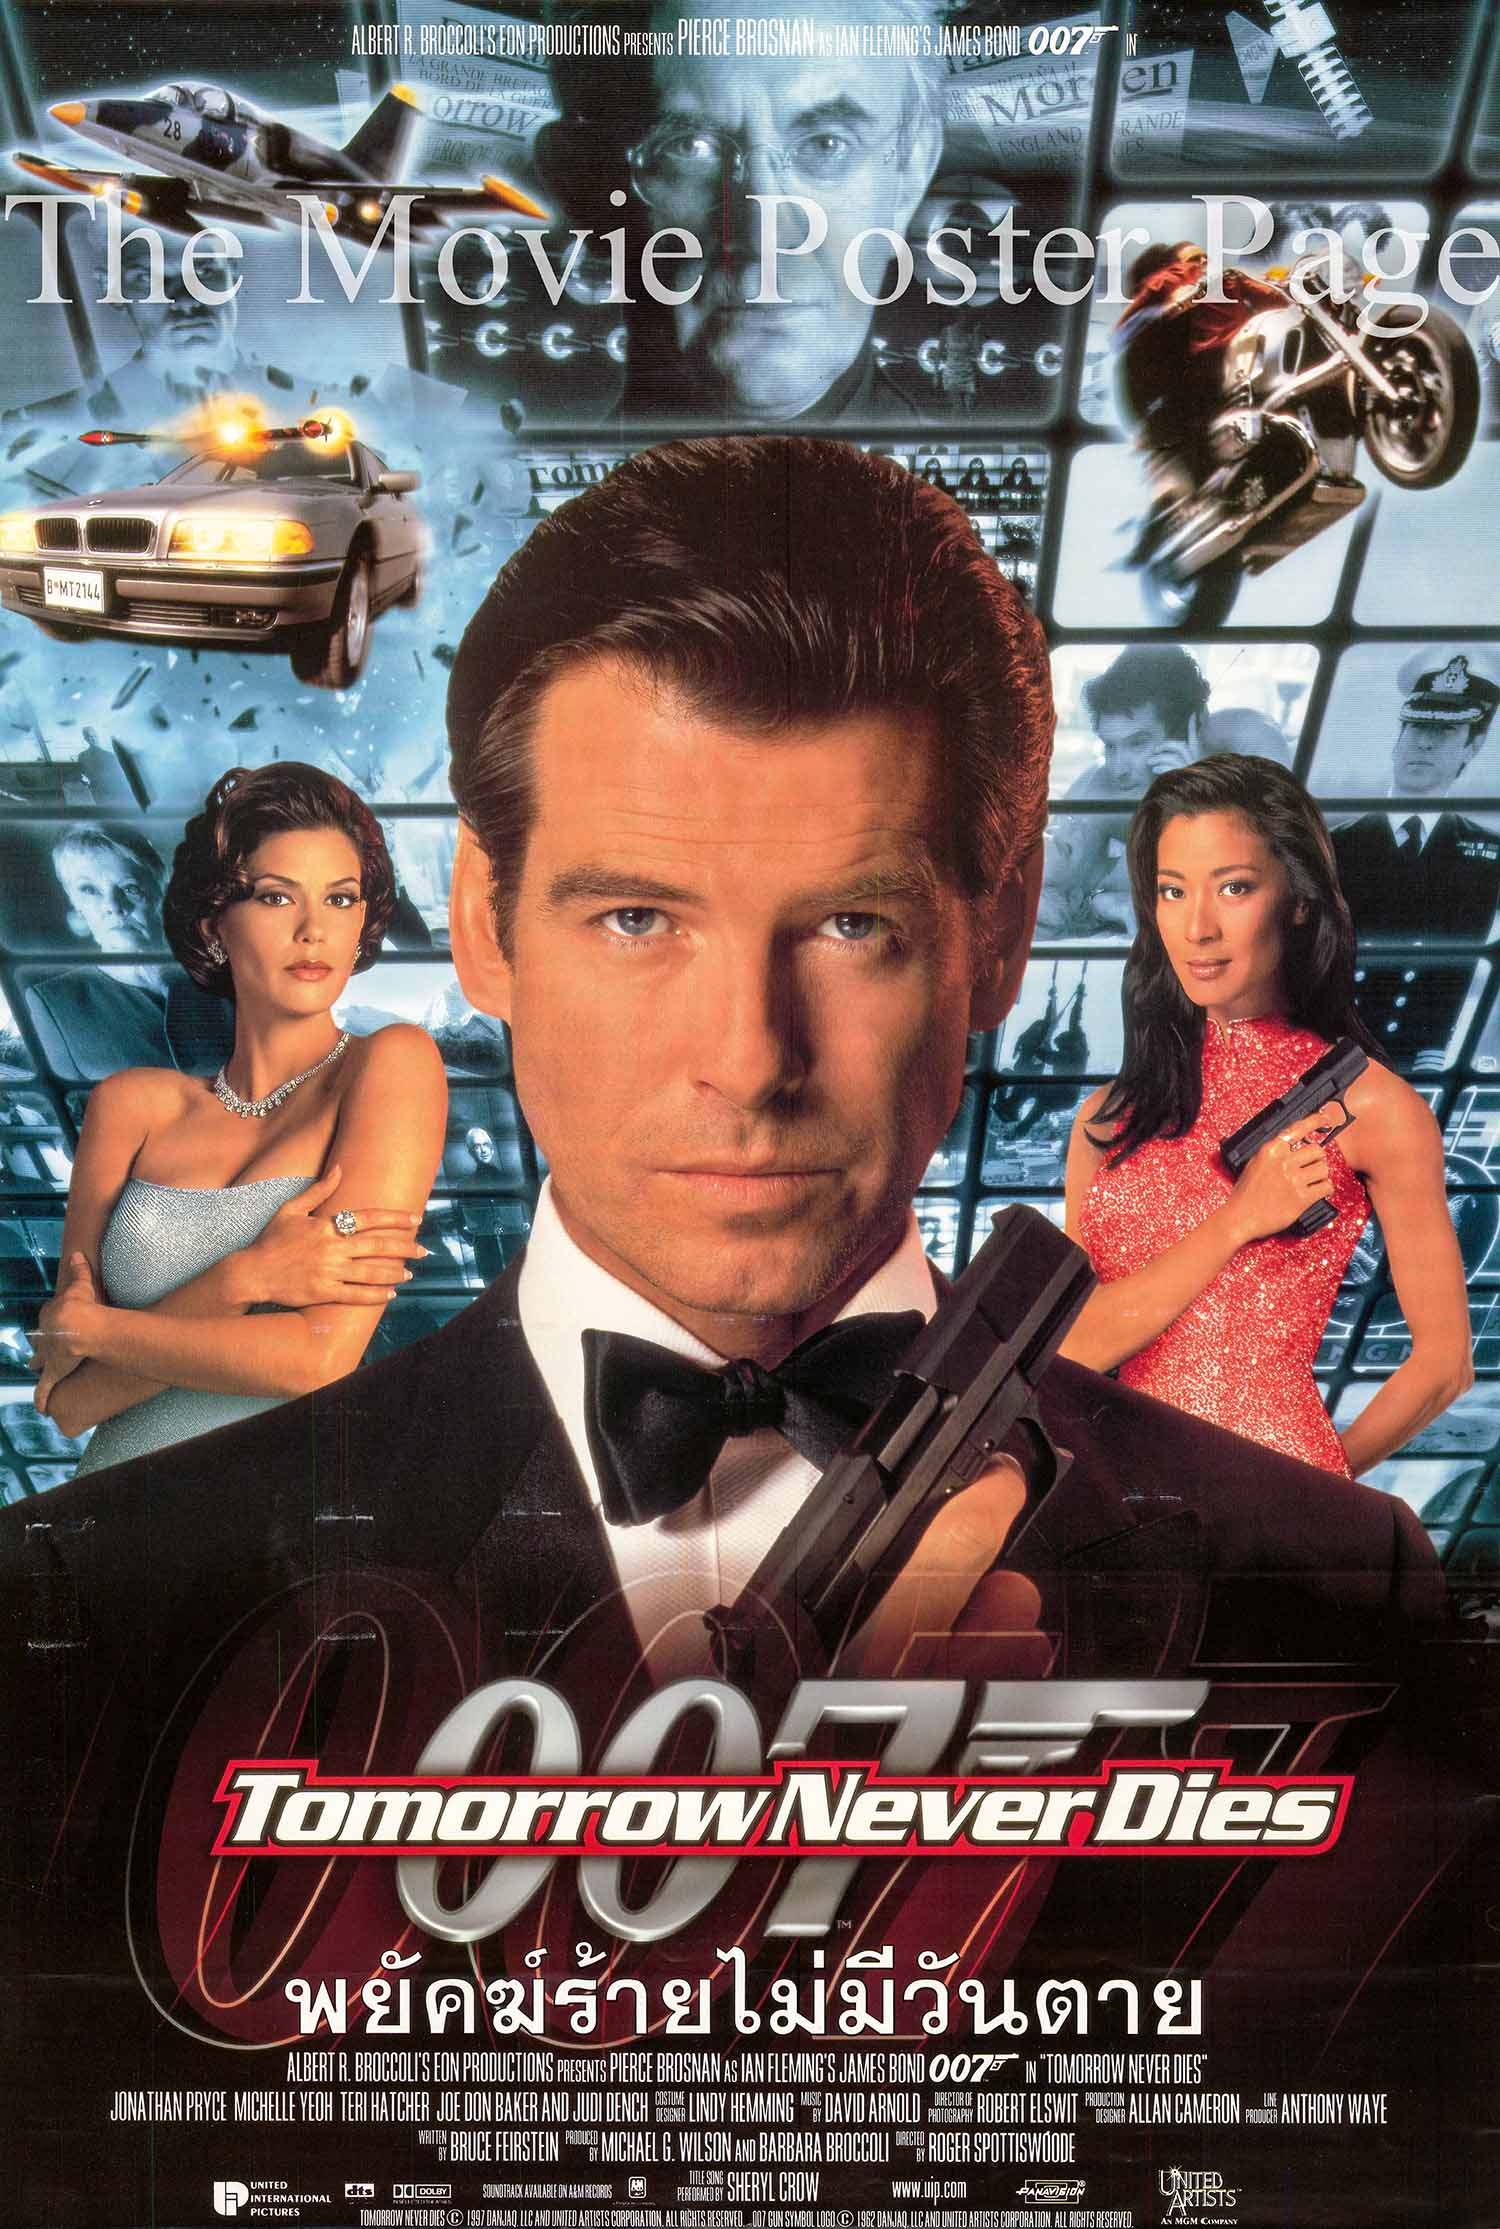 Pictured is a Thai promotional poster for the 1997 Roger Spottiswoode film Tomorrow Never Dies